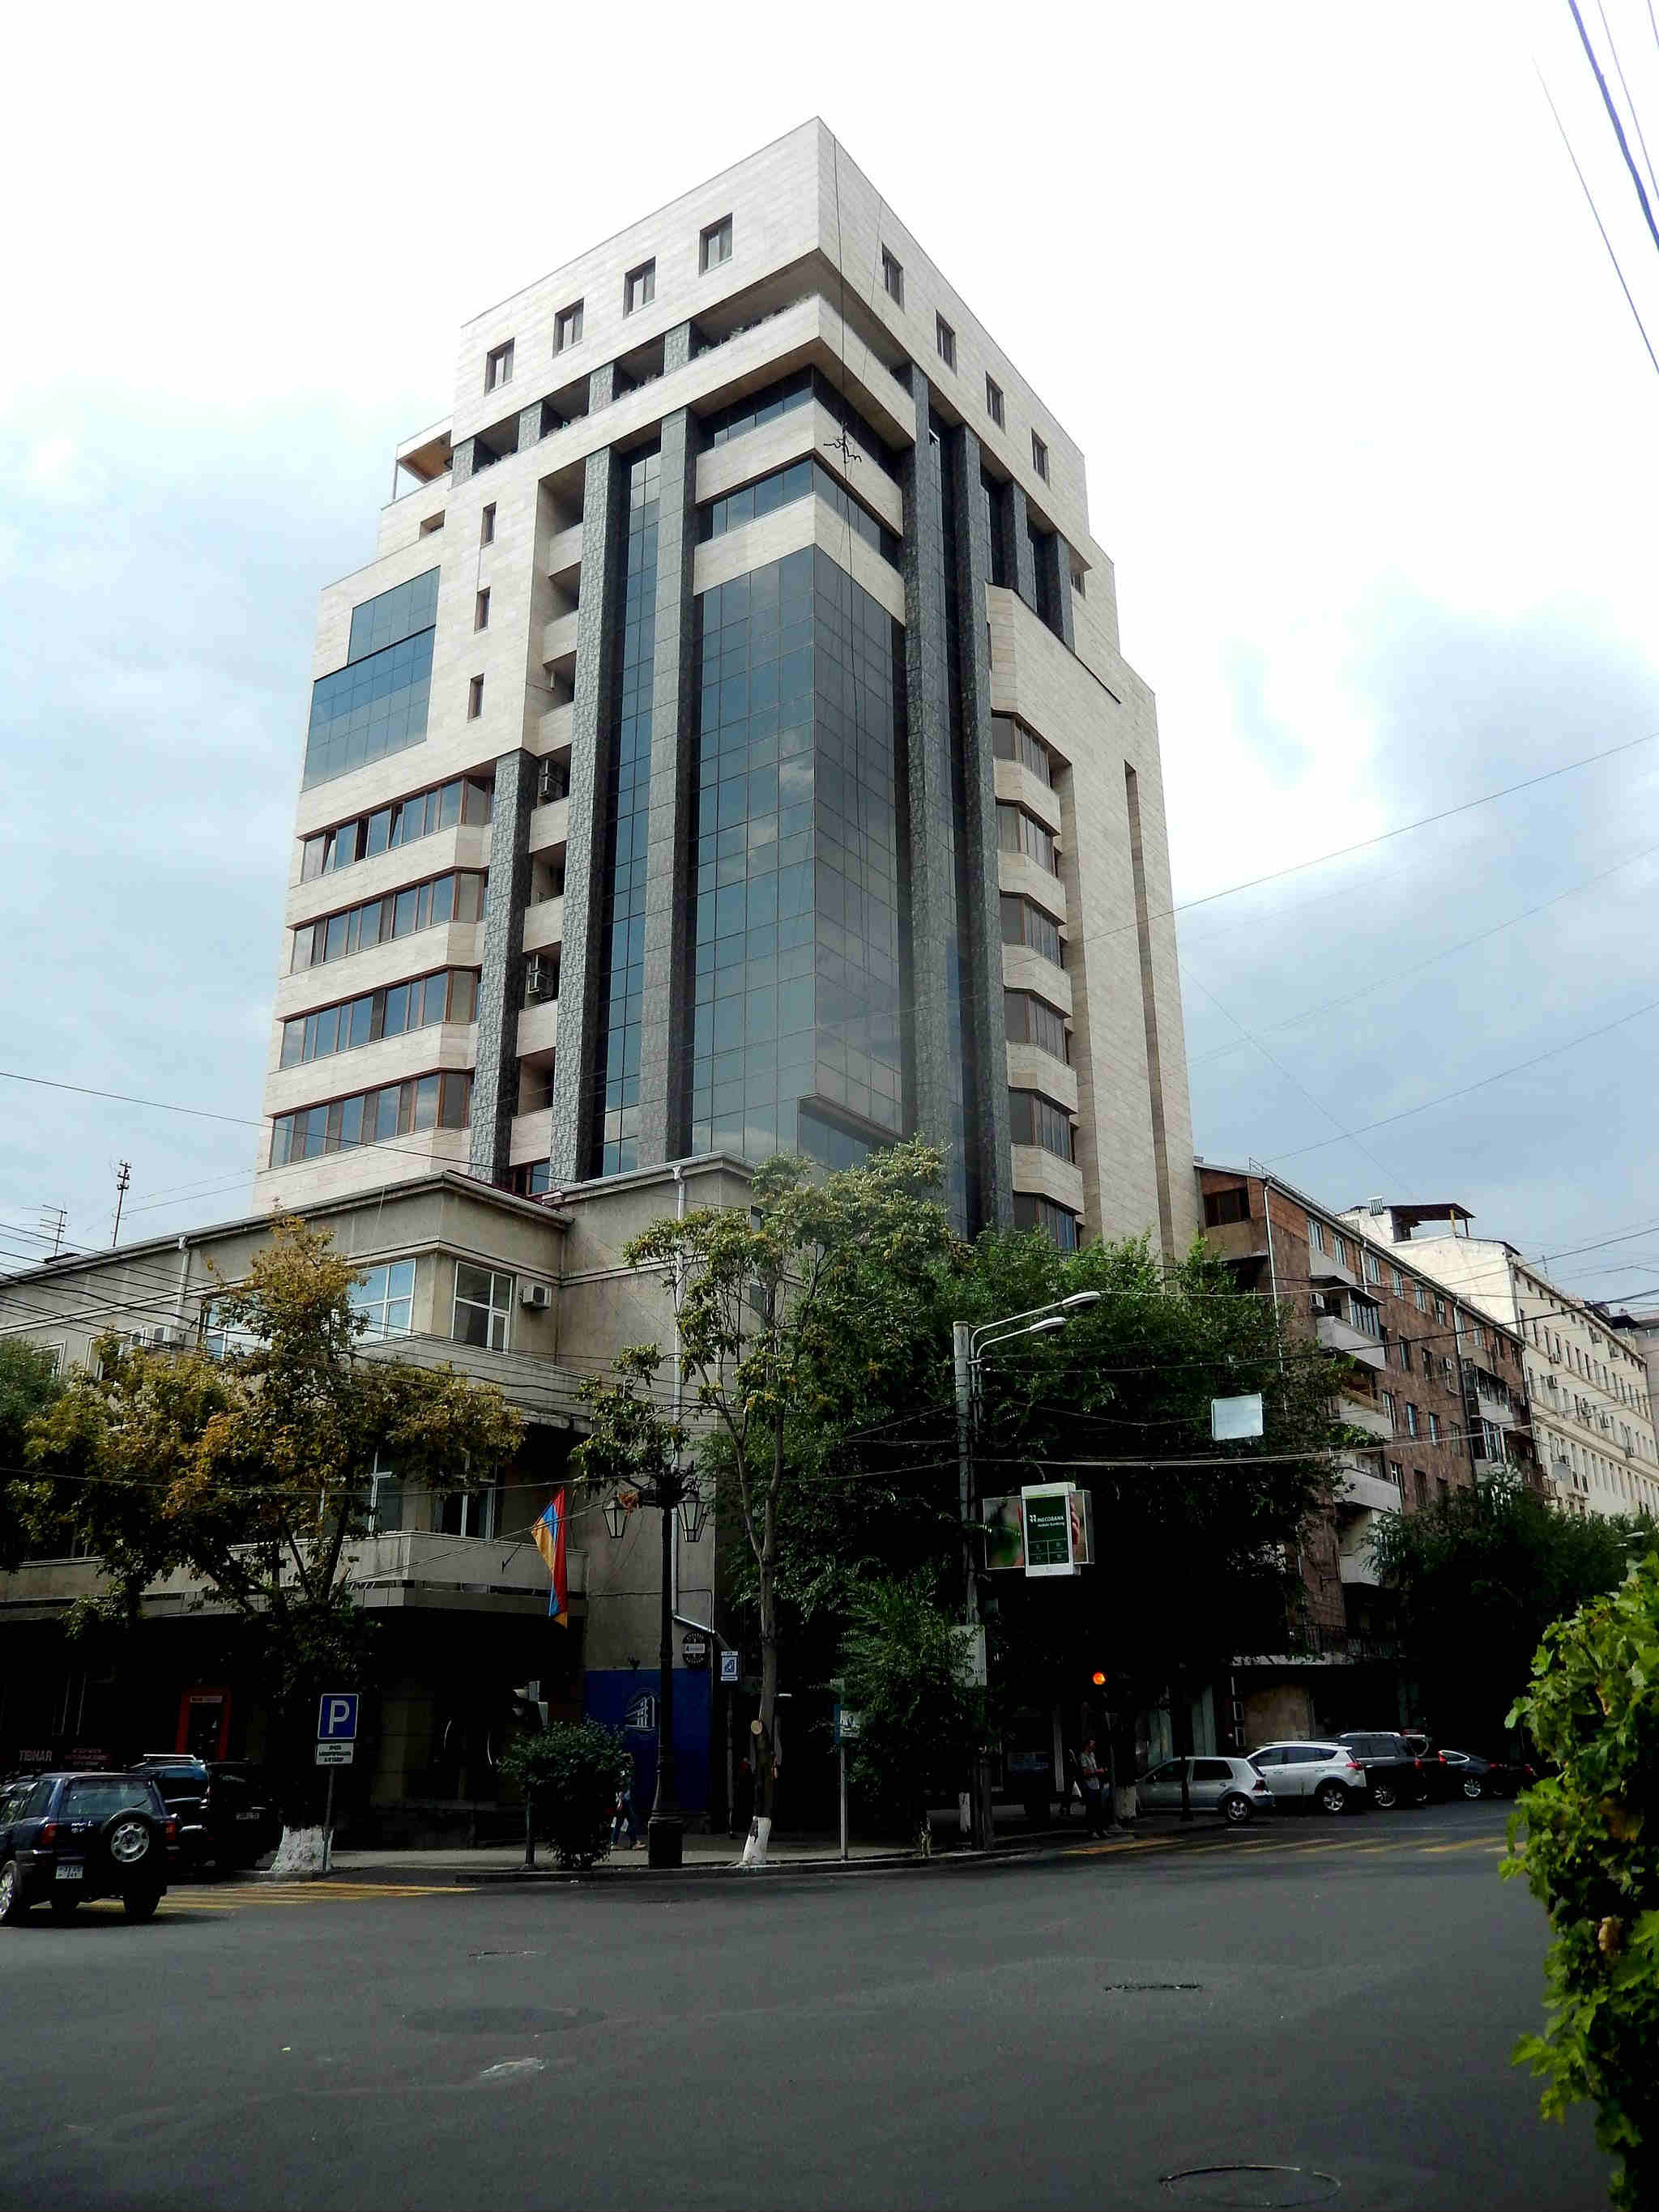 New building in yerevan